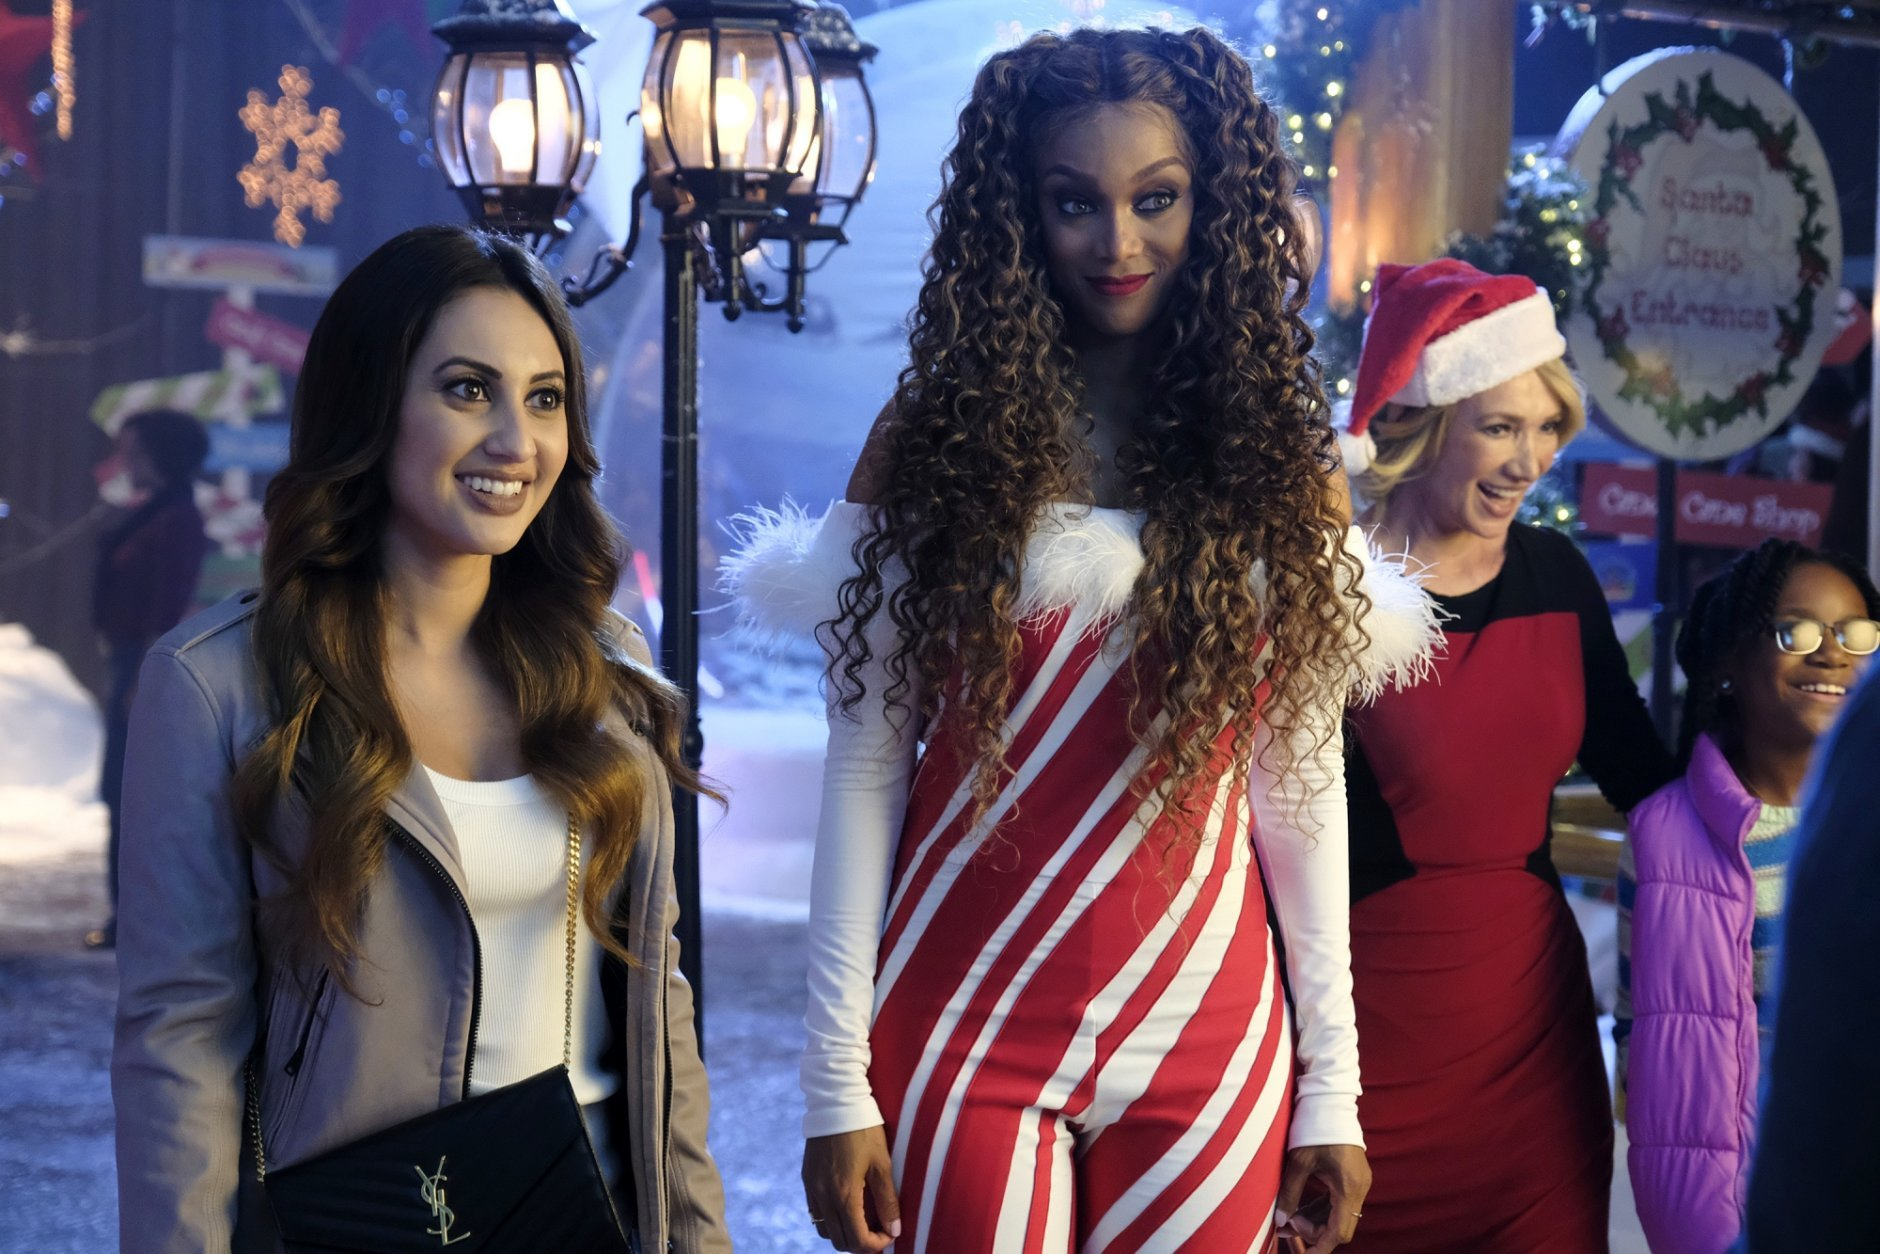 """This image released by Freeform shows Francia Raisa, left, and Tyra Banks in a scene from """"Life-Siz 2: A Christmas Eve,"""" airing on Sunday, Dec. 2, at 9:00 - 11:00 p.m. EST/PST on Freeform. (Disney Channel/Guy D'Alema)"""